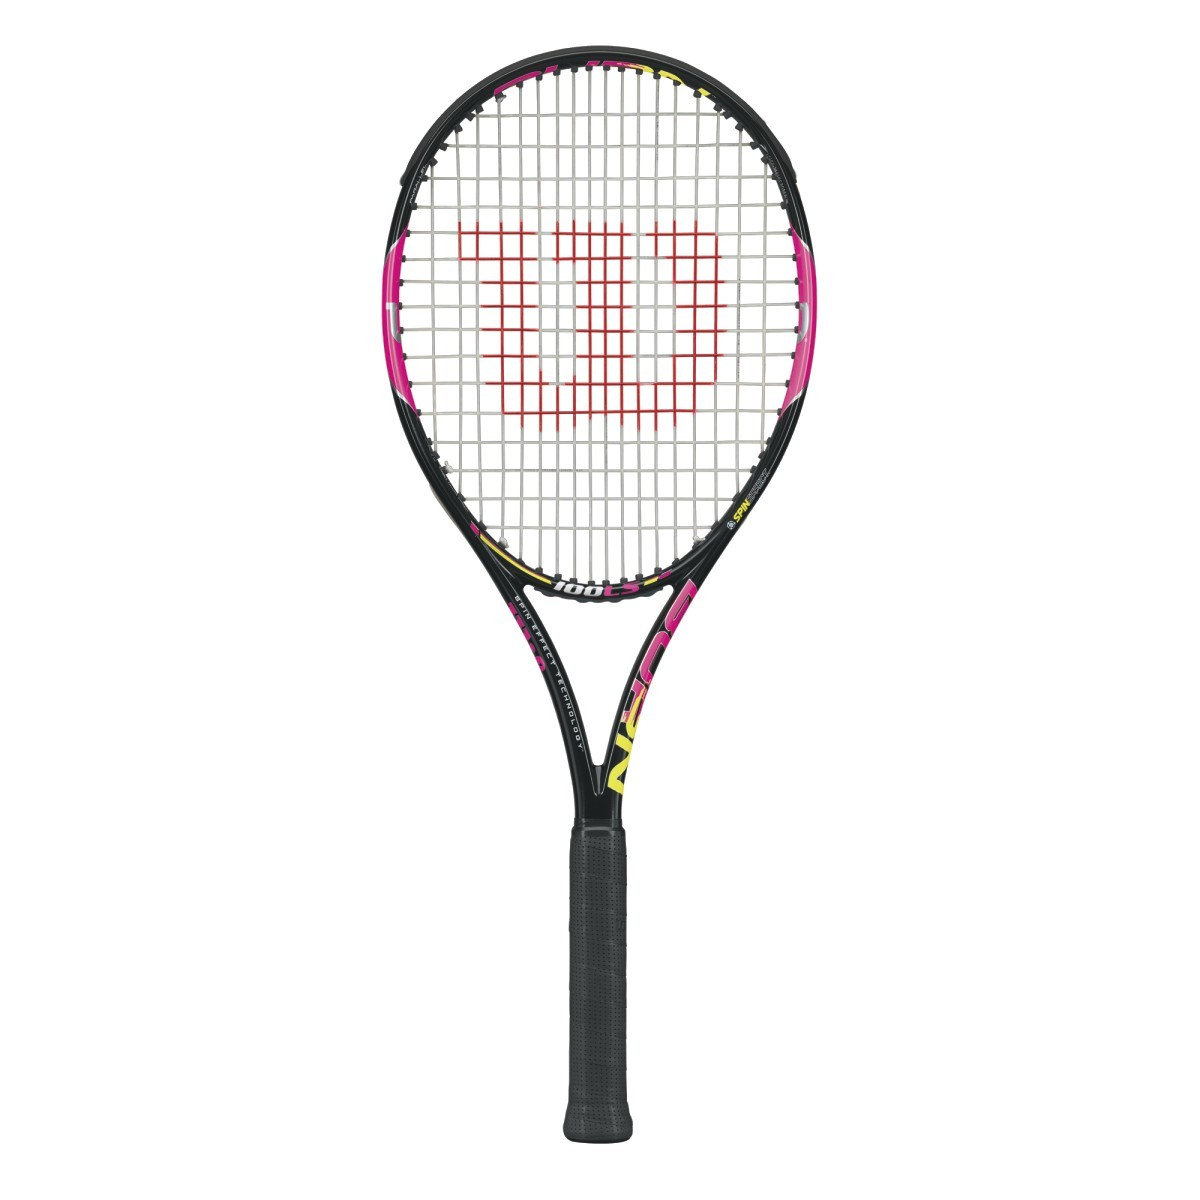 Tennis Rackets Pictures.